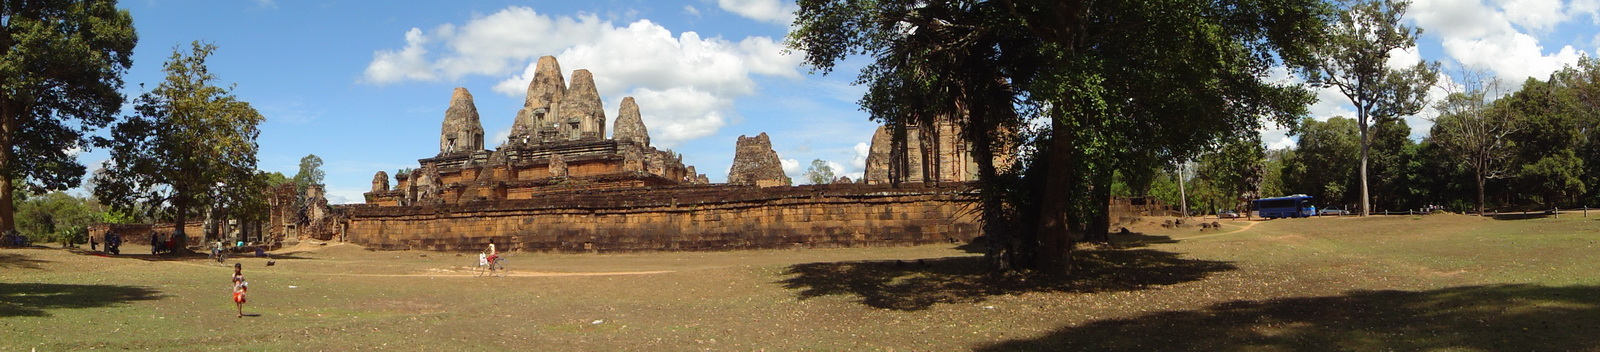 Facing North Pre Rup Temple laterite brick towers East Baray Jan 2010 01